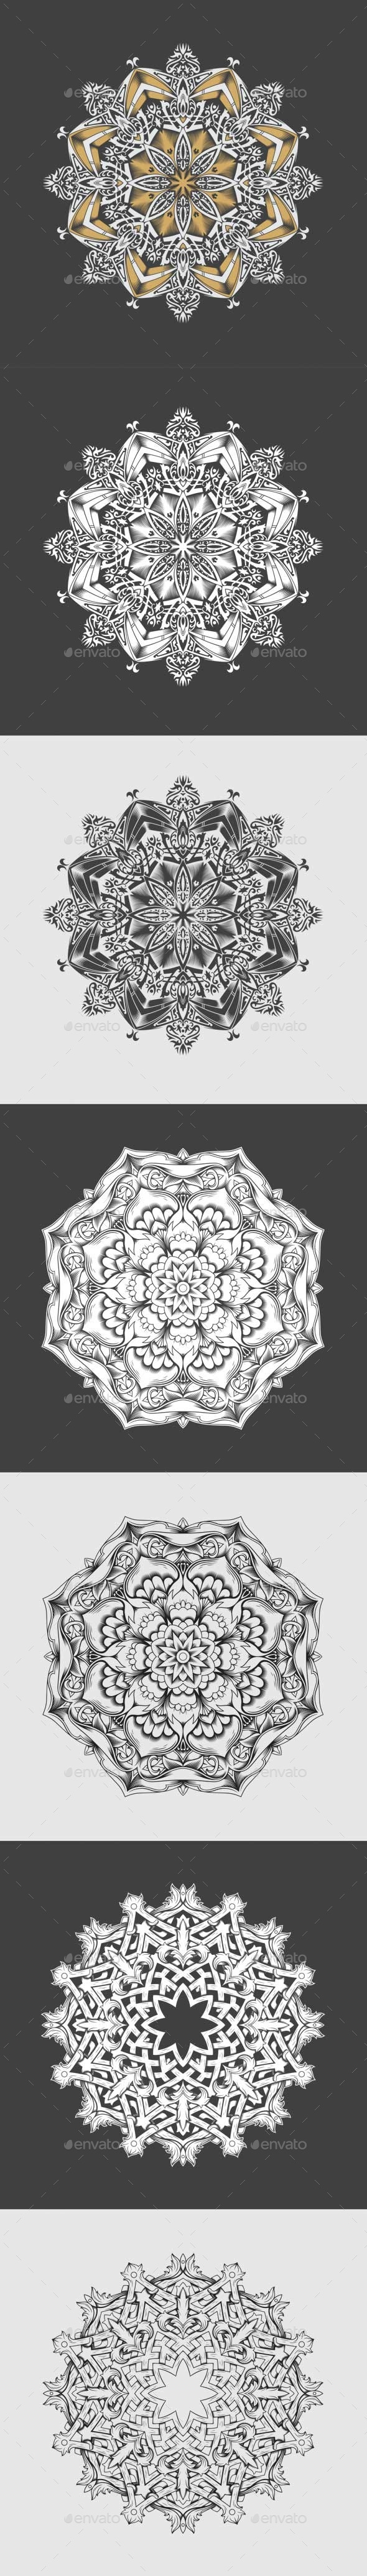 GraphicRiver Mandalas 10601118